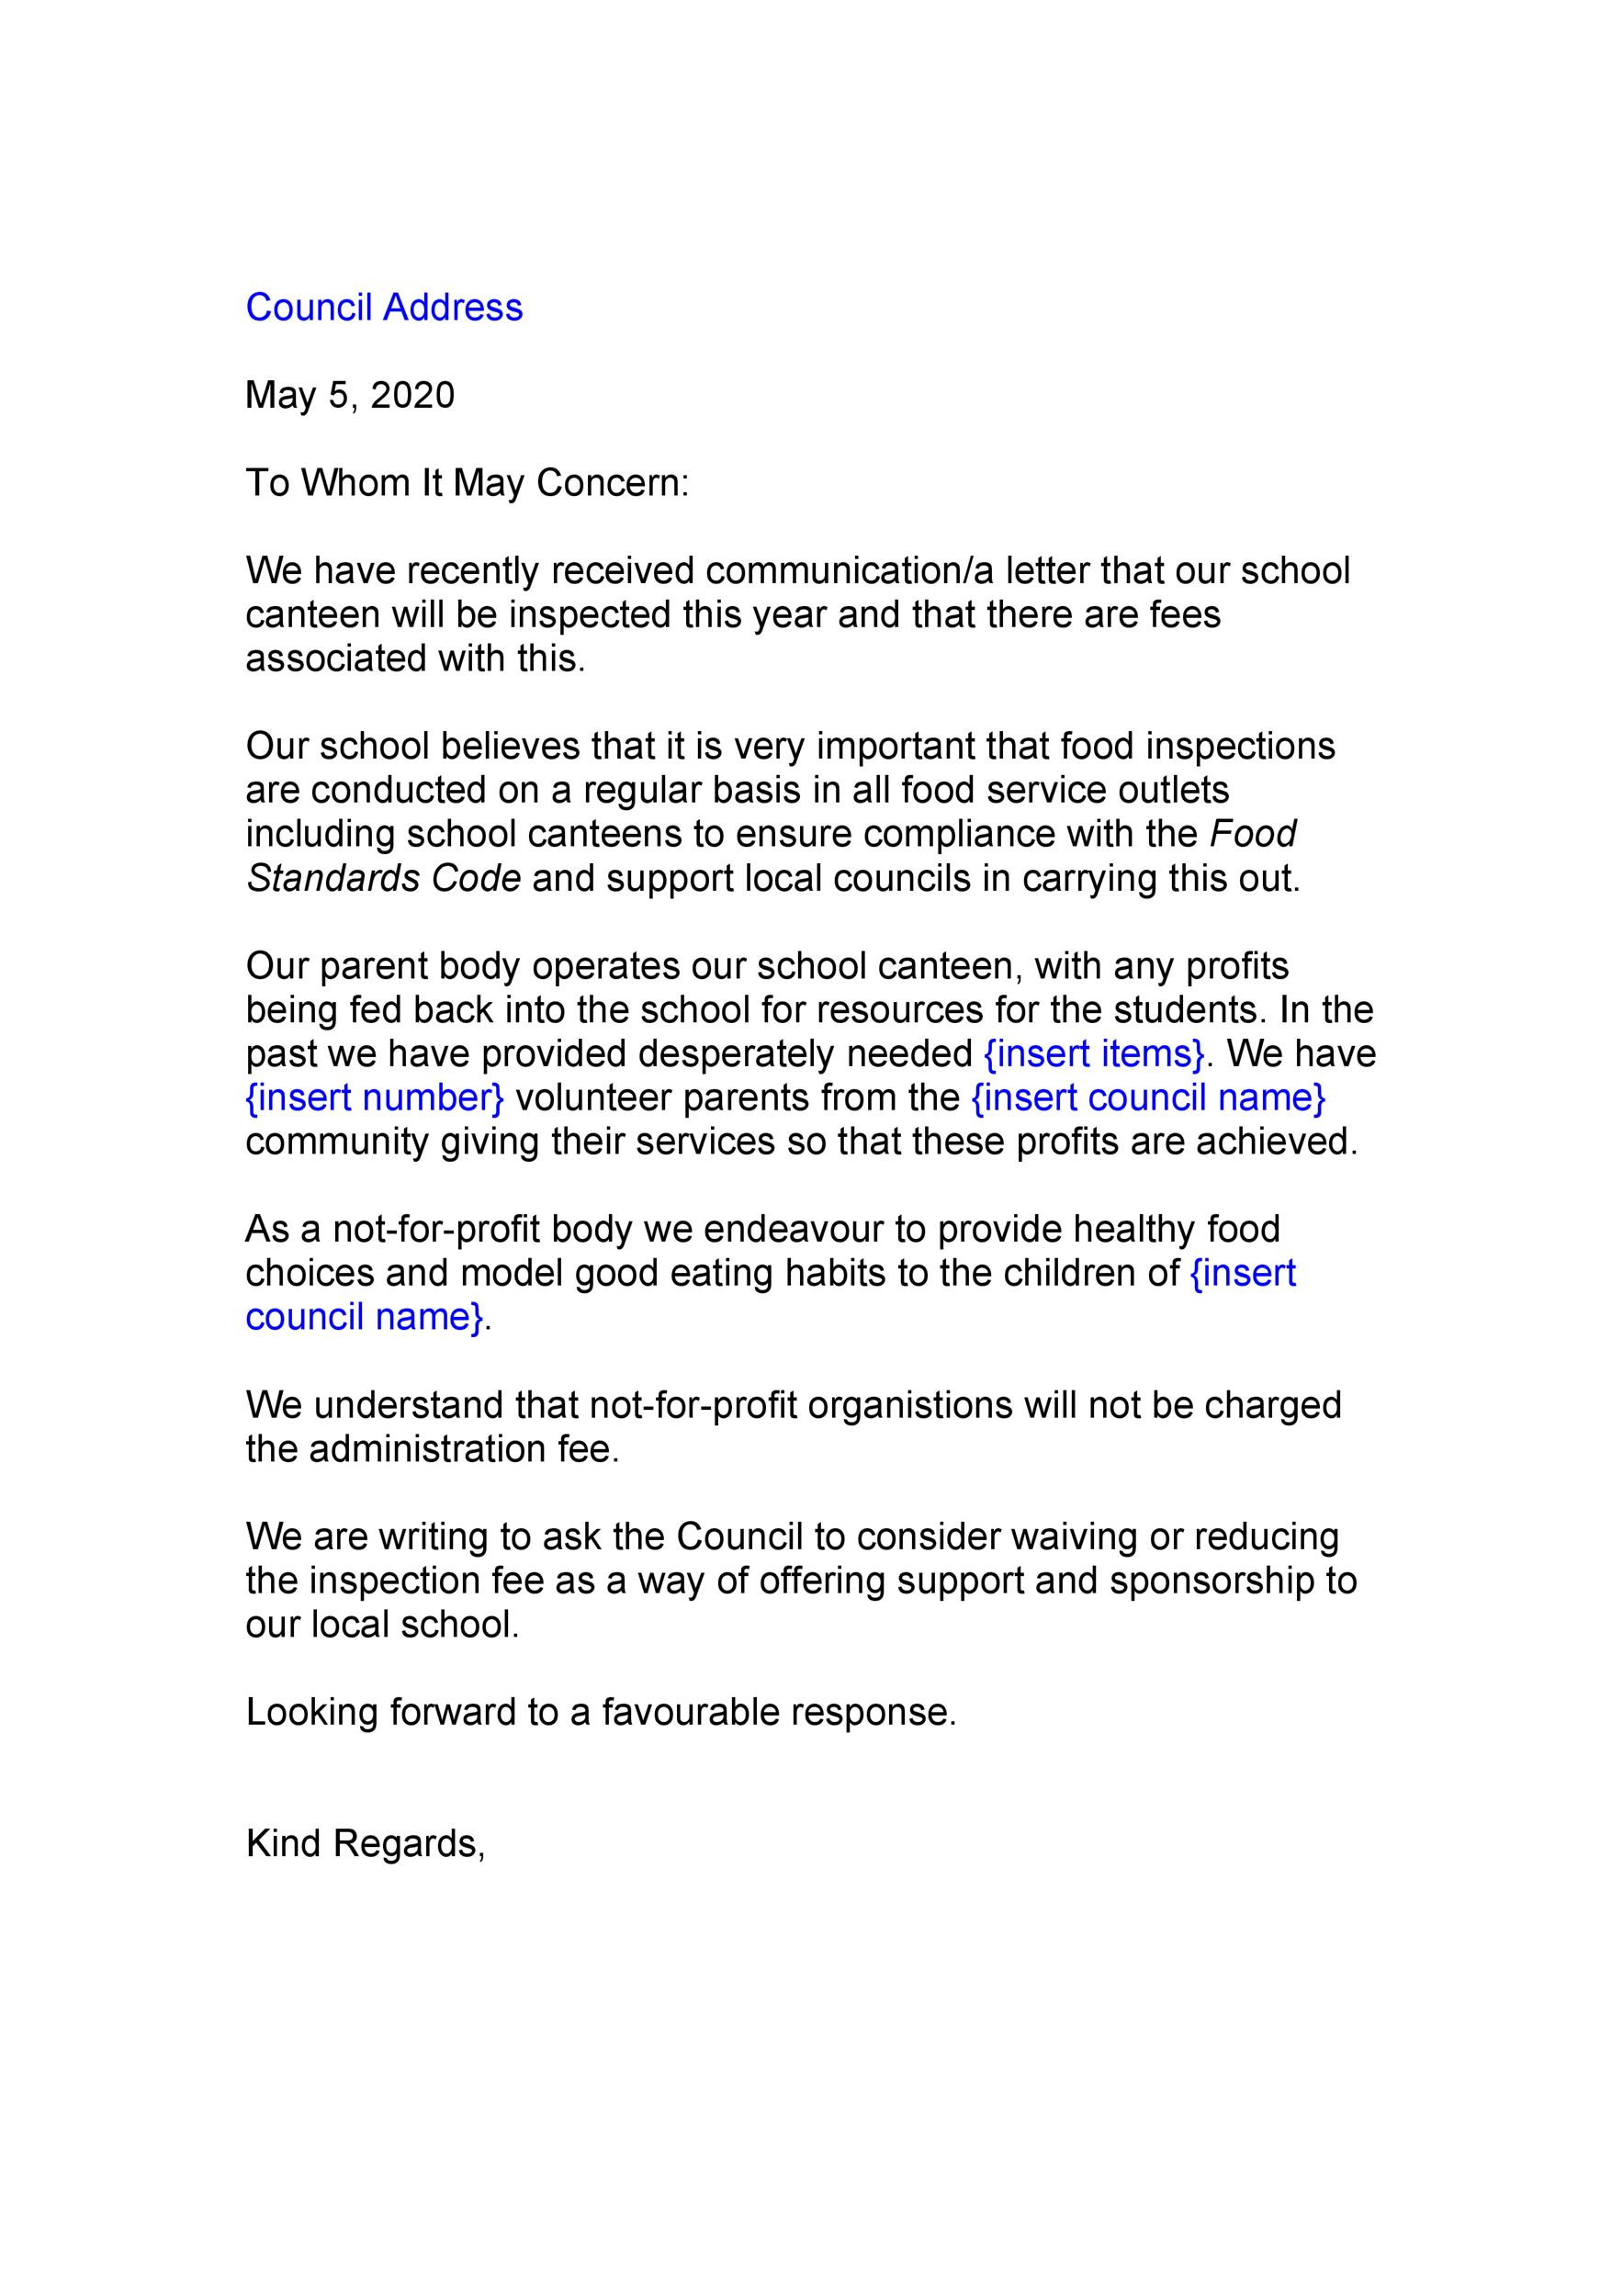 50 To Whom It May Concern Letter  Email Templates ᐅ Template Lab